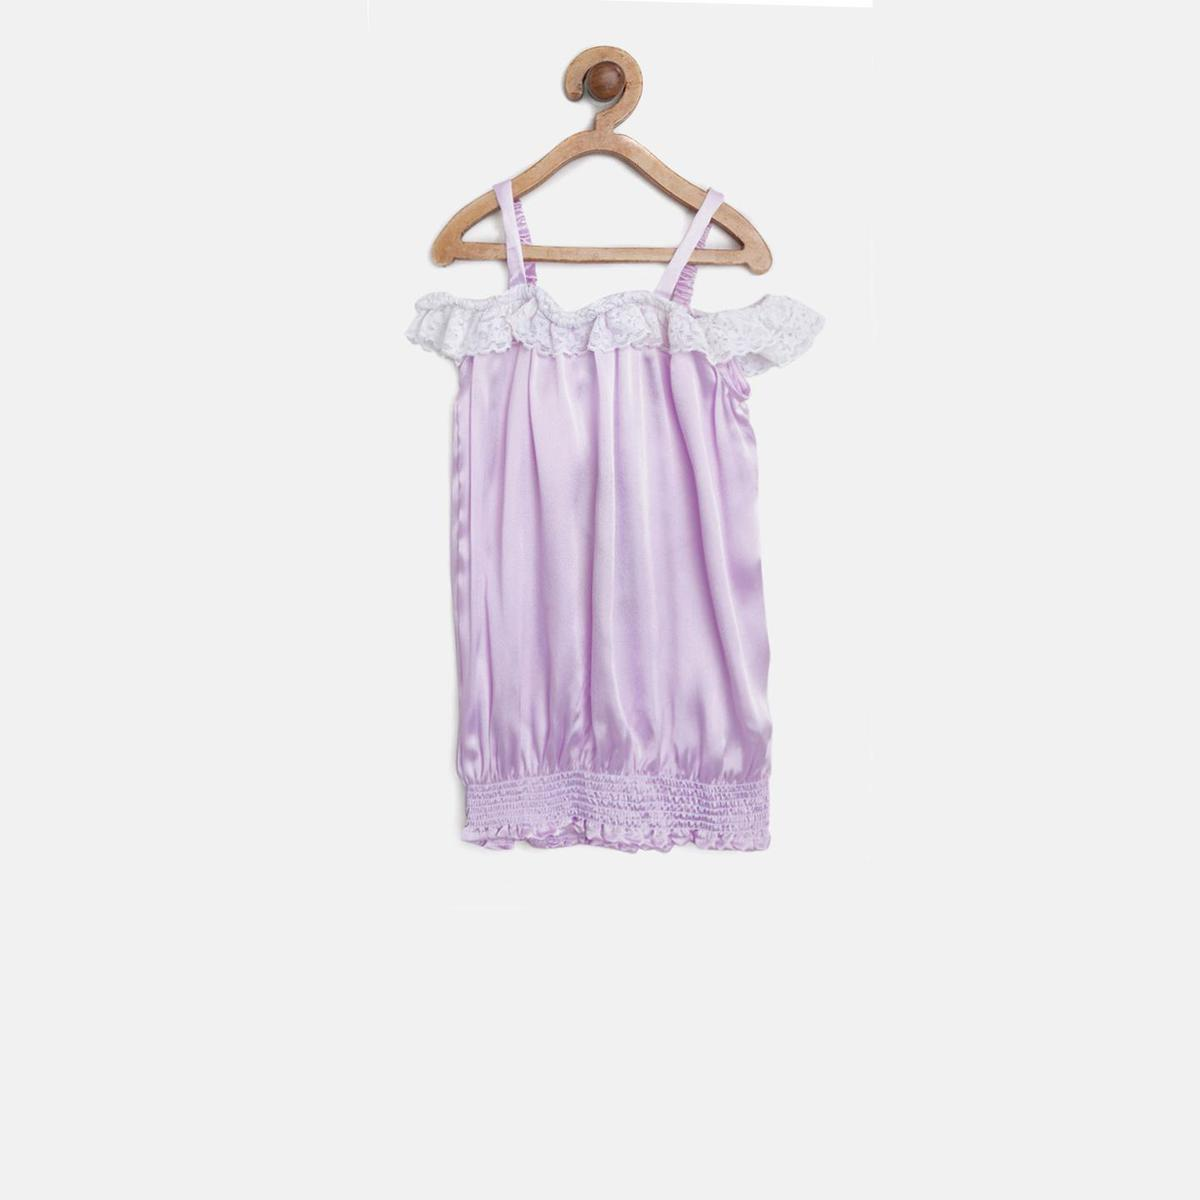 612 League - Purple Colored Cold Shoulder Woven Satin Top For Girls